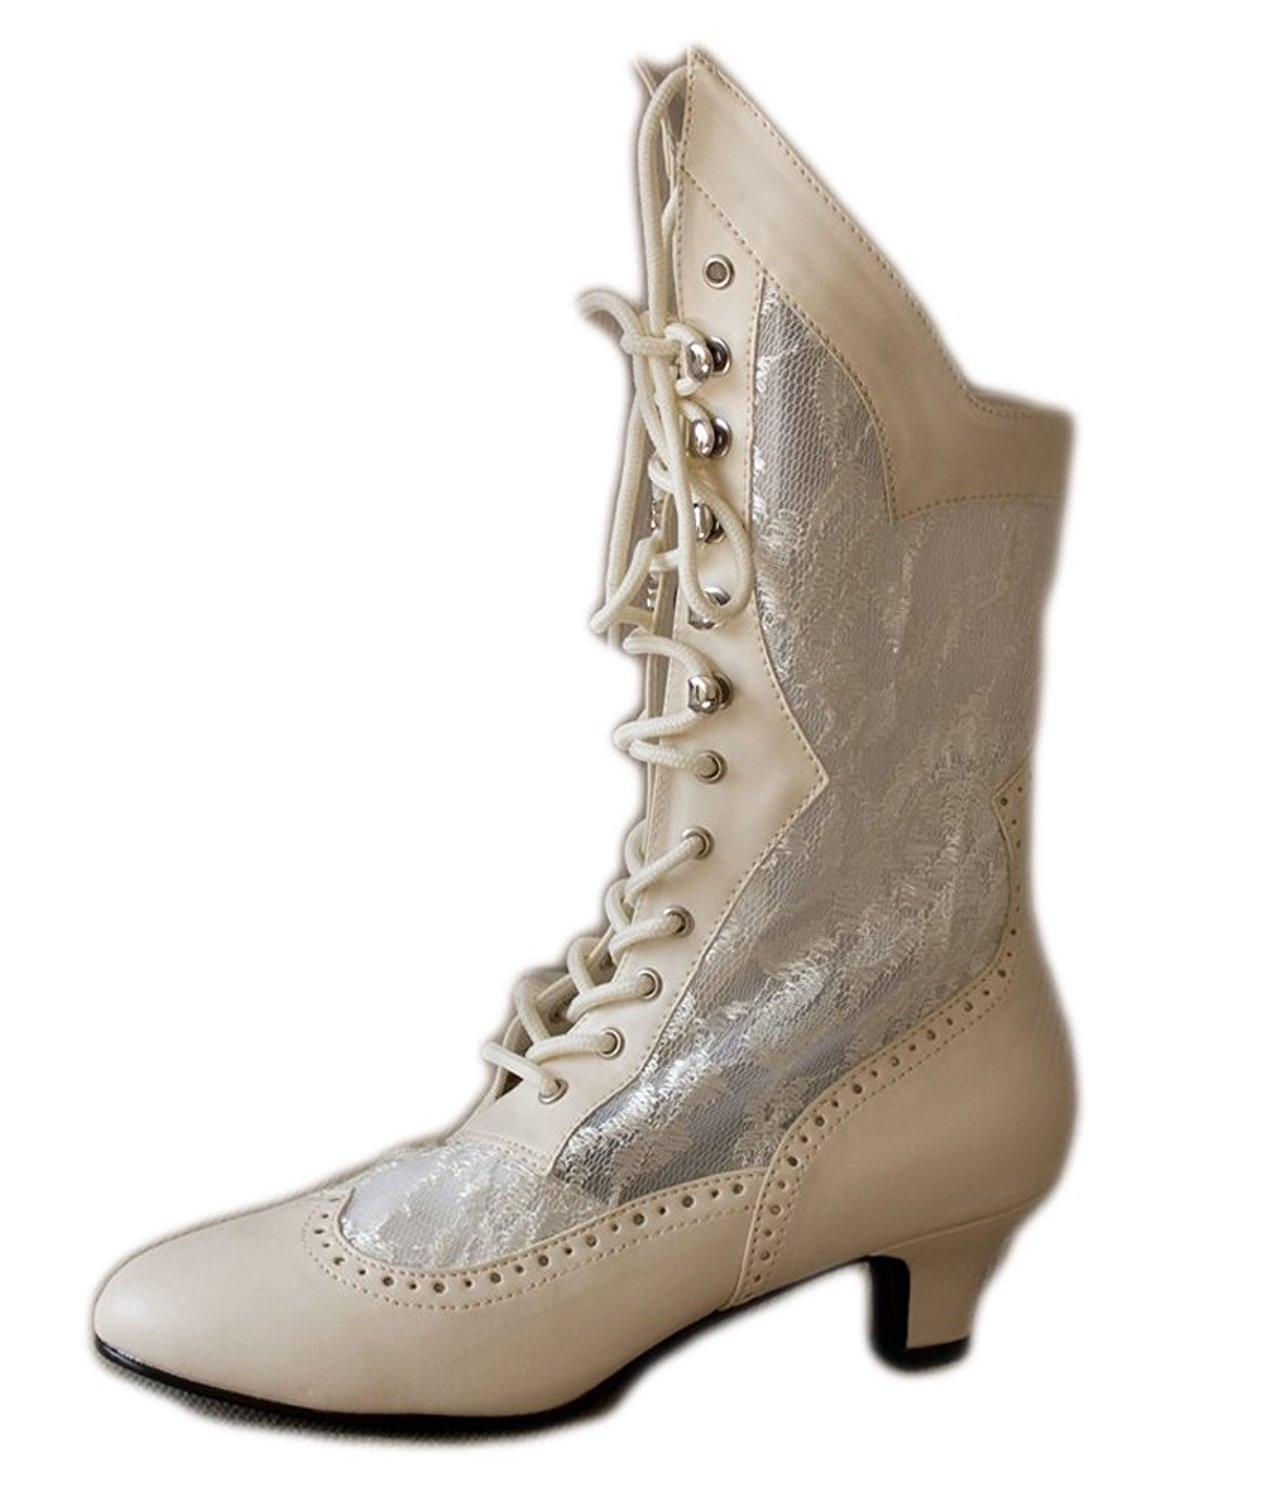 Beige Vintage Style Lace Up Wedding Bridal Bohemian Boho Mid-Calf Women Boots (9)